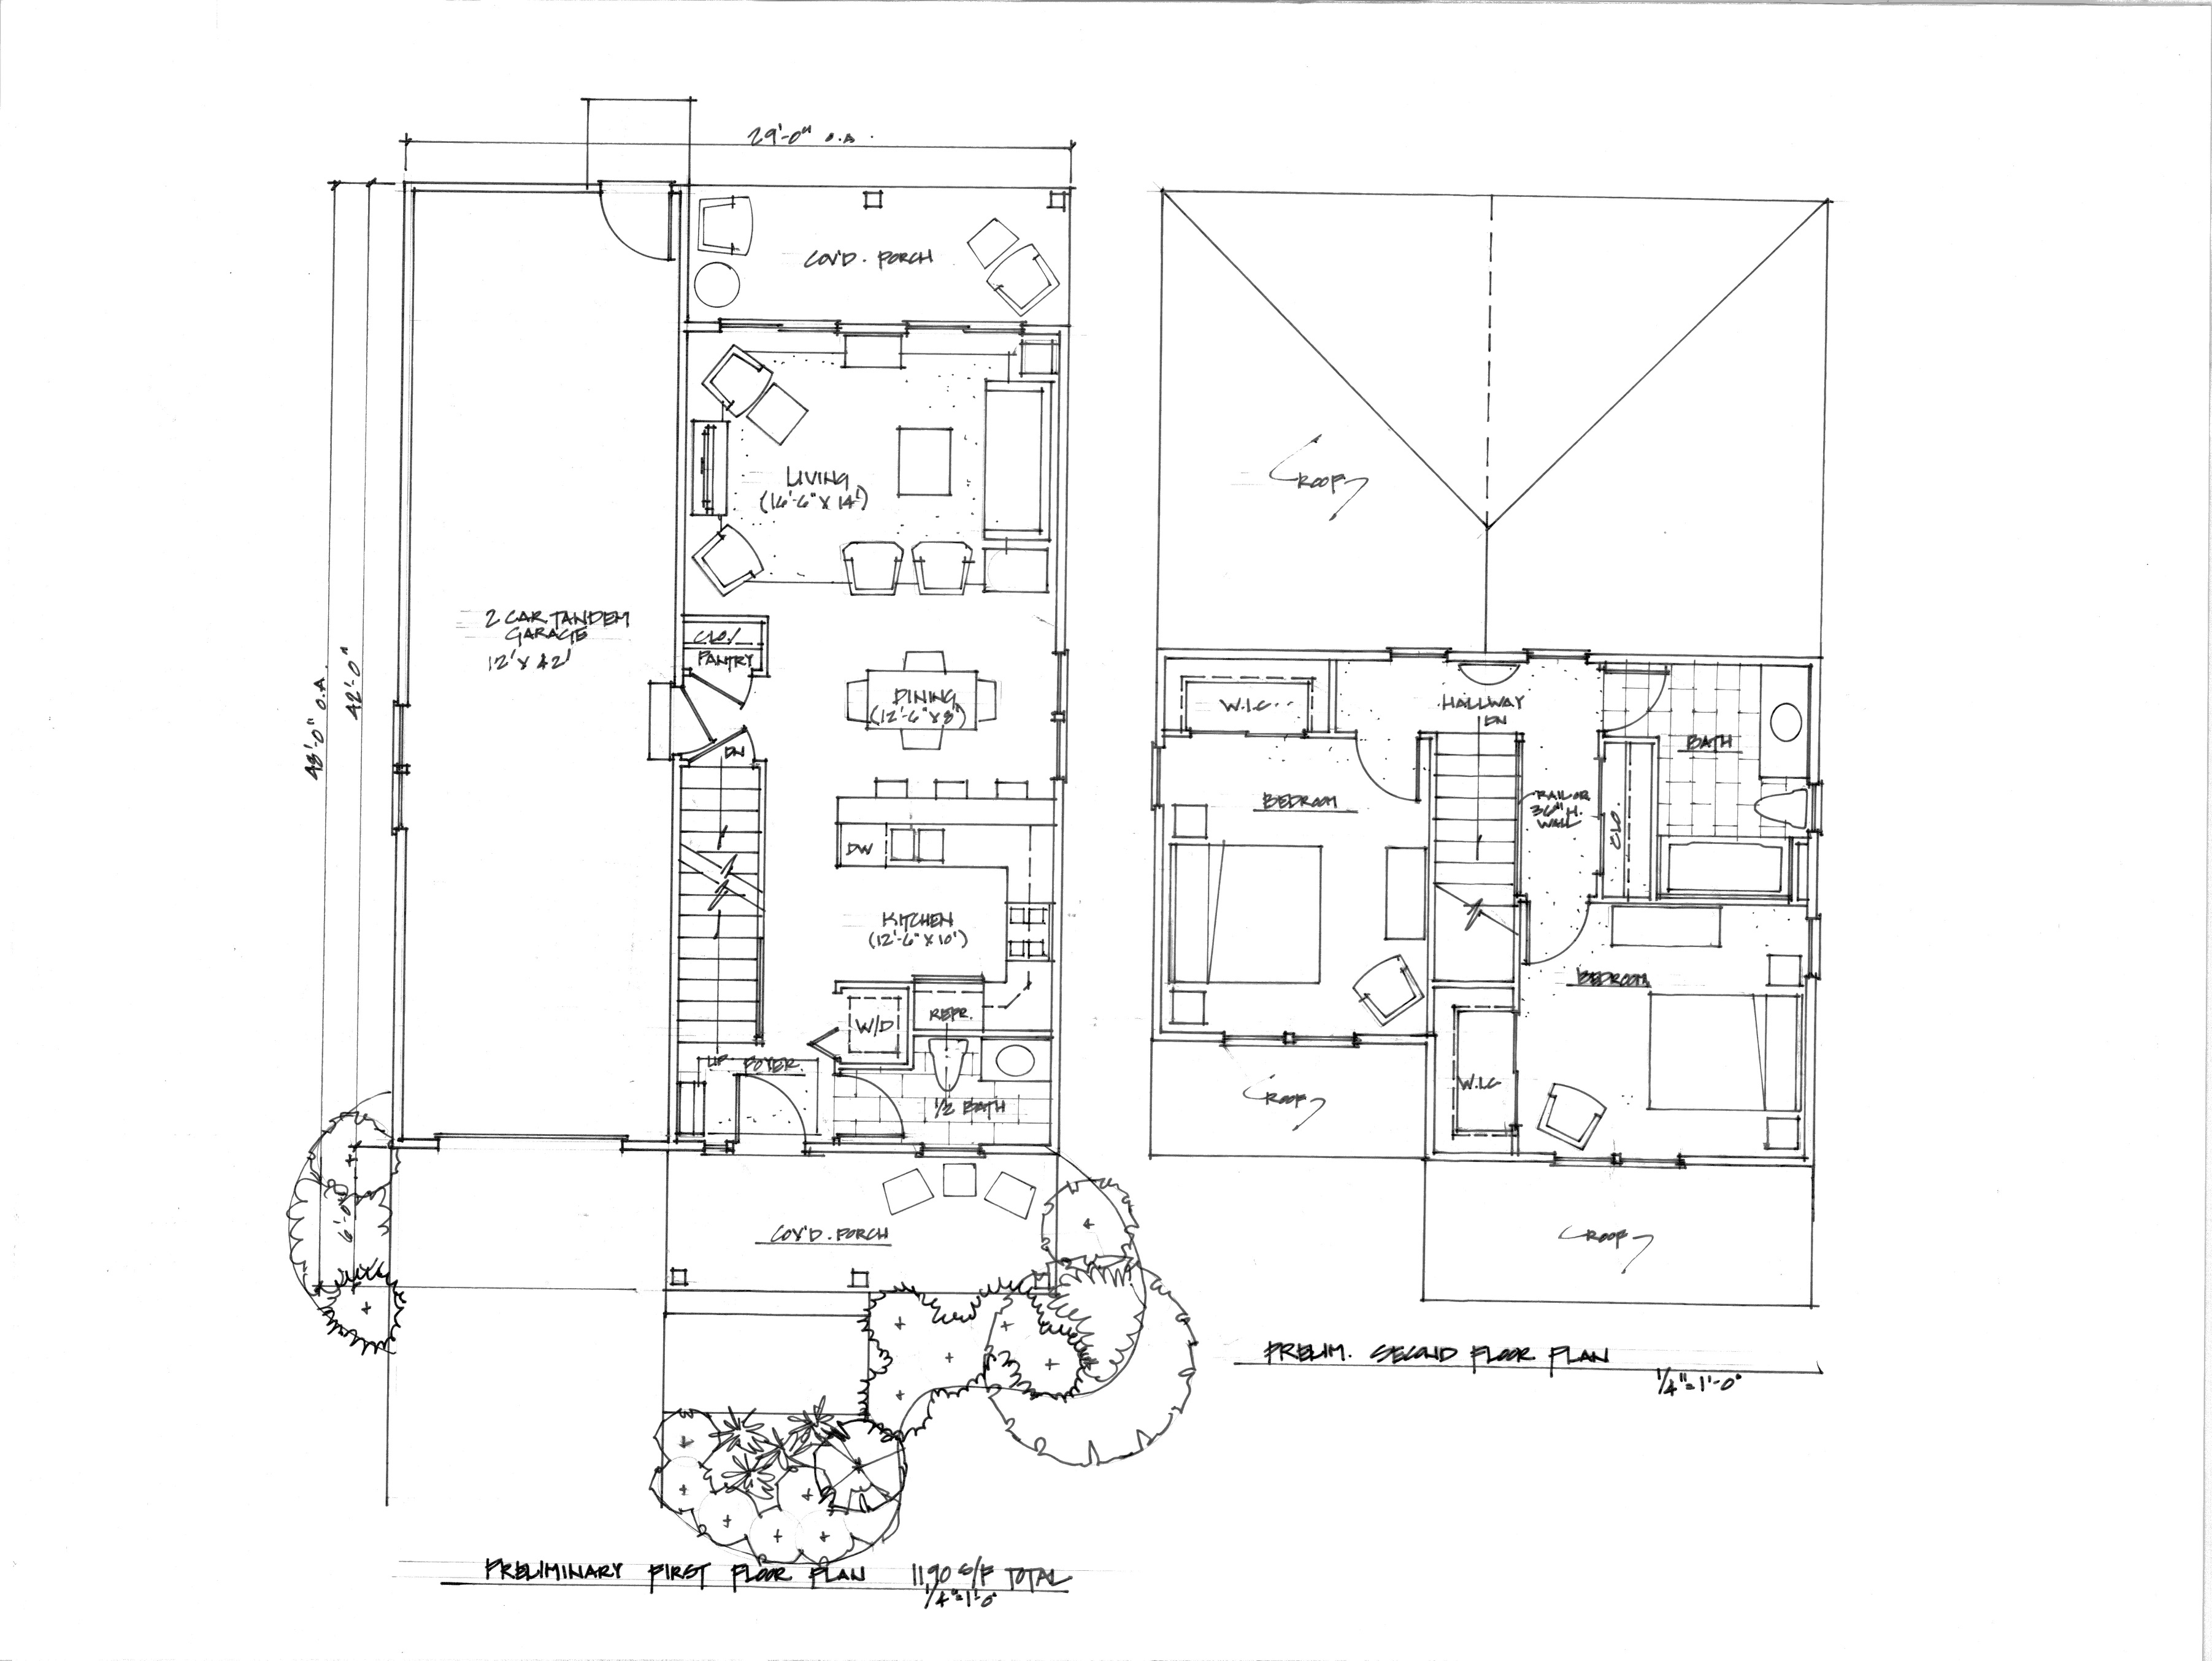 The Birstol Floor Plan